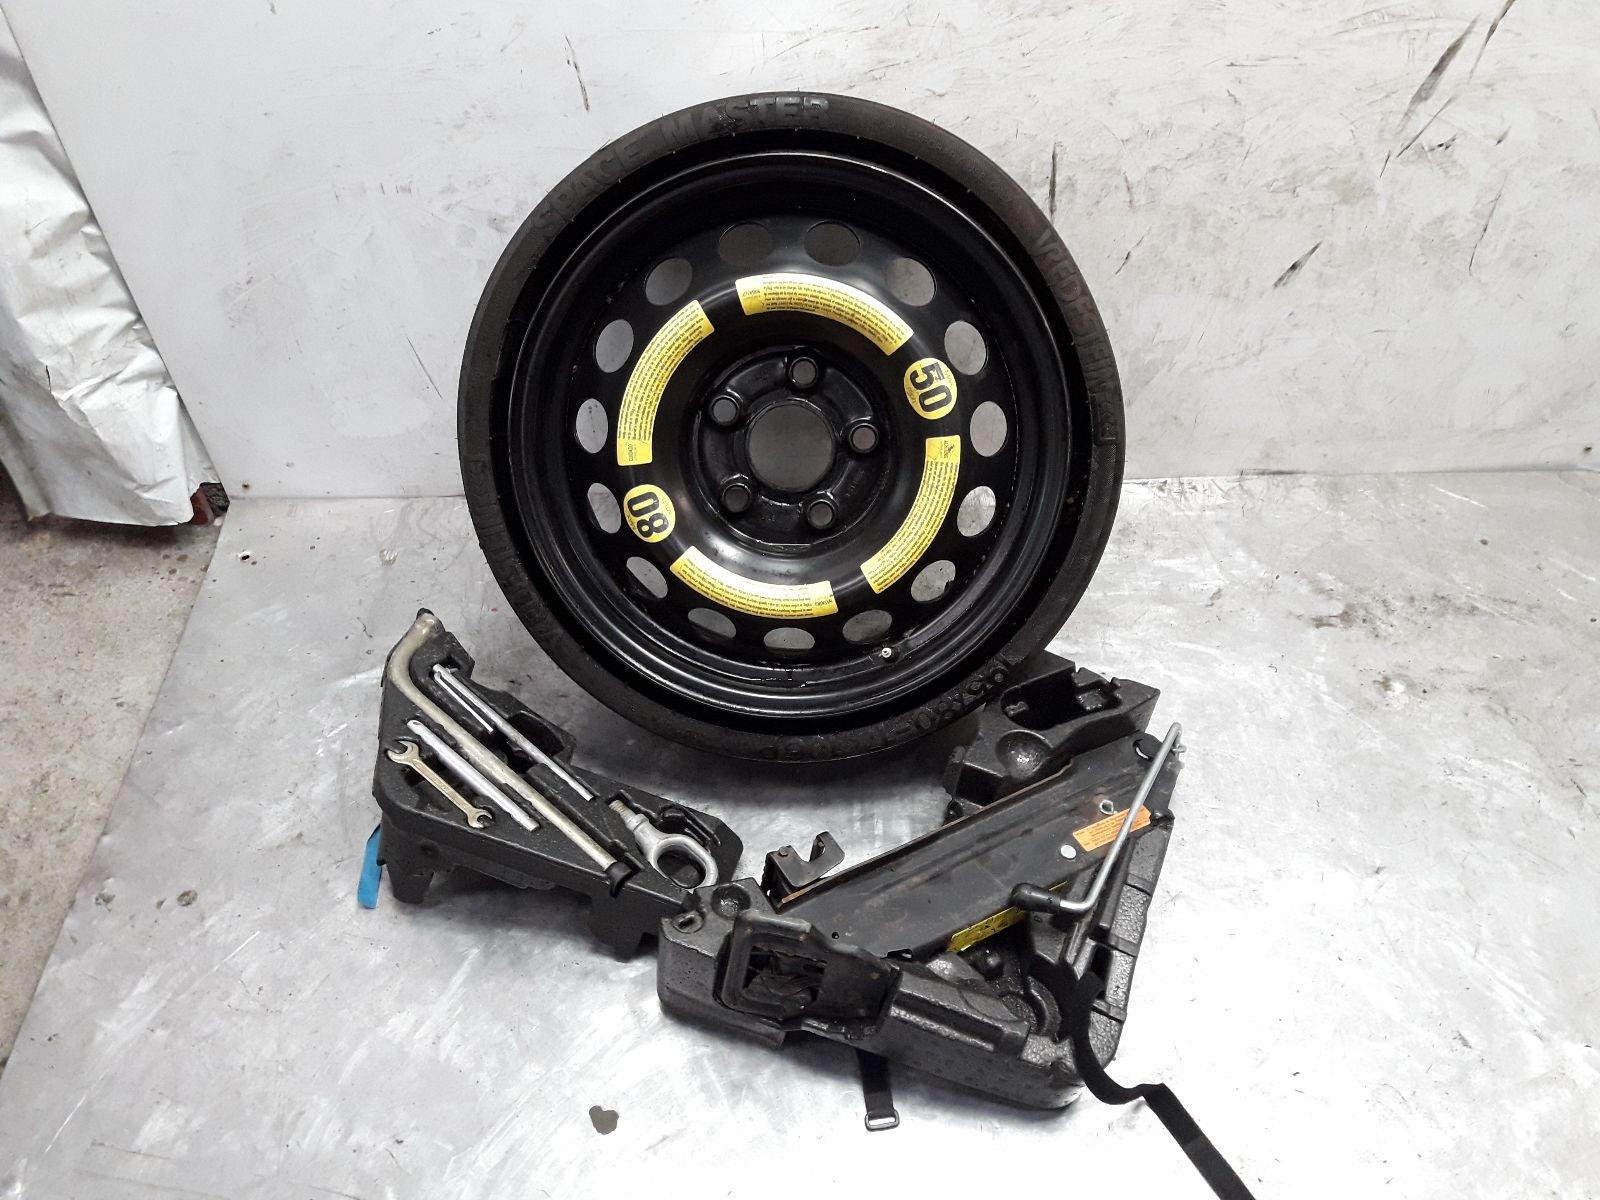 VOLKSWAGEN TOUAREG 17 Inch Spare Wheel & Tyre Space Saver 195/80/17 & JACK KIT